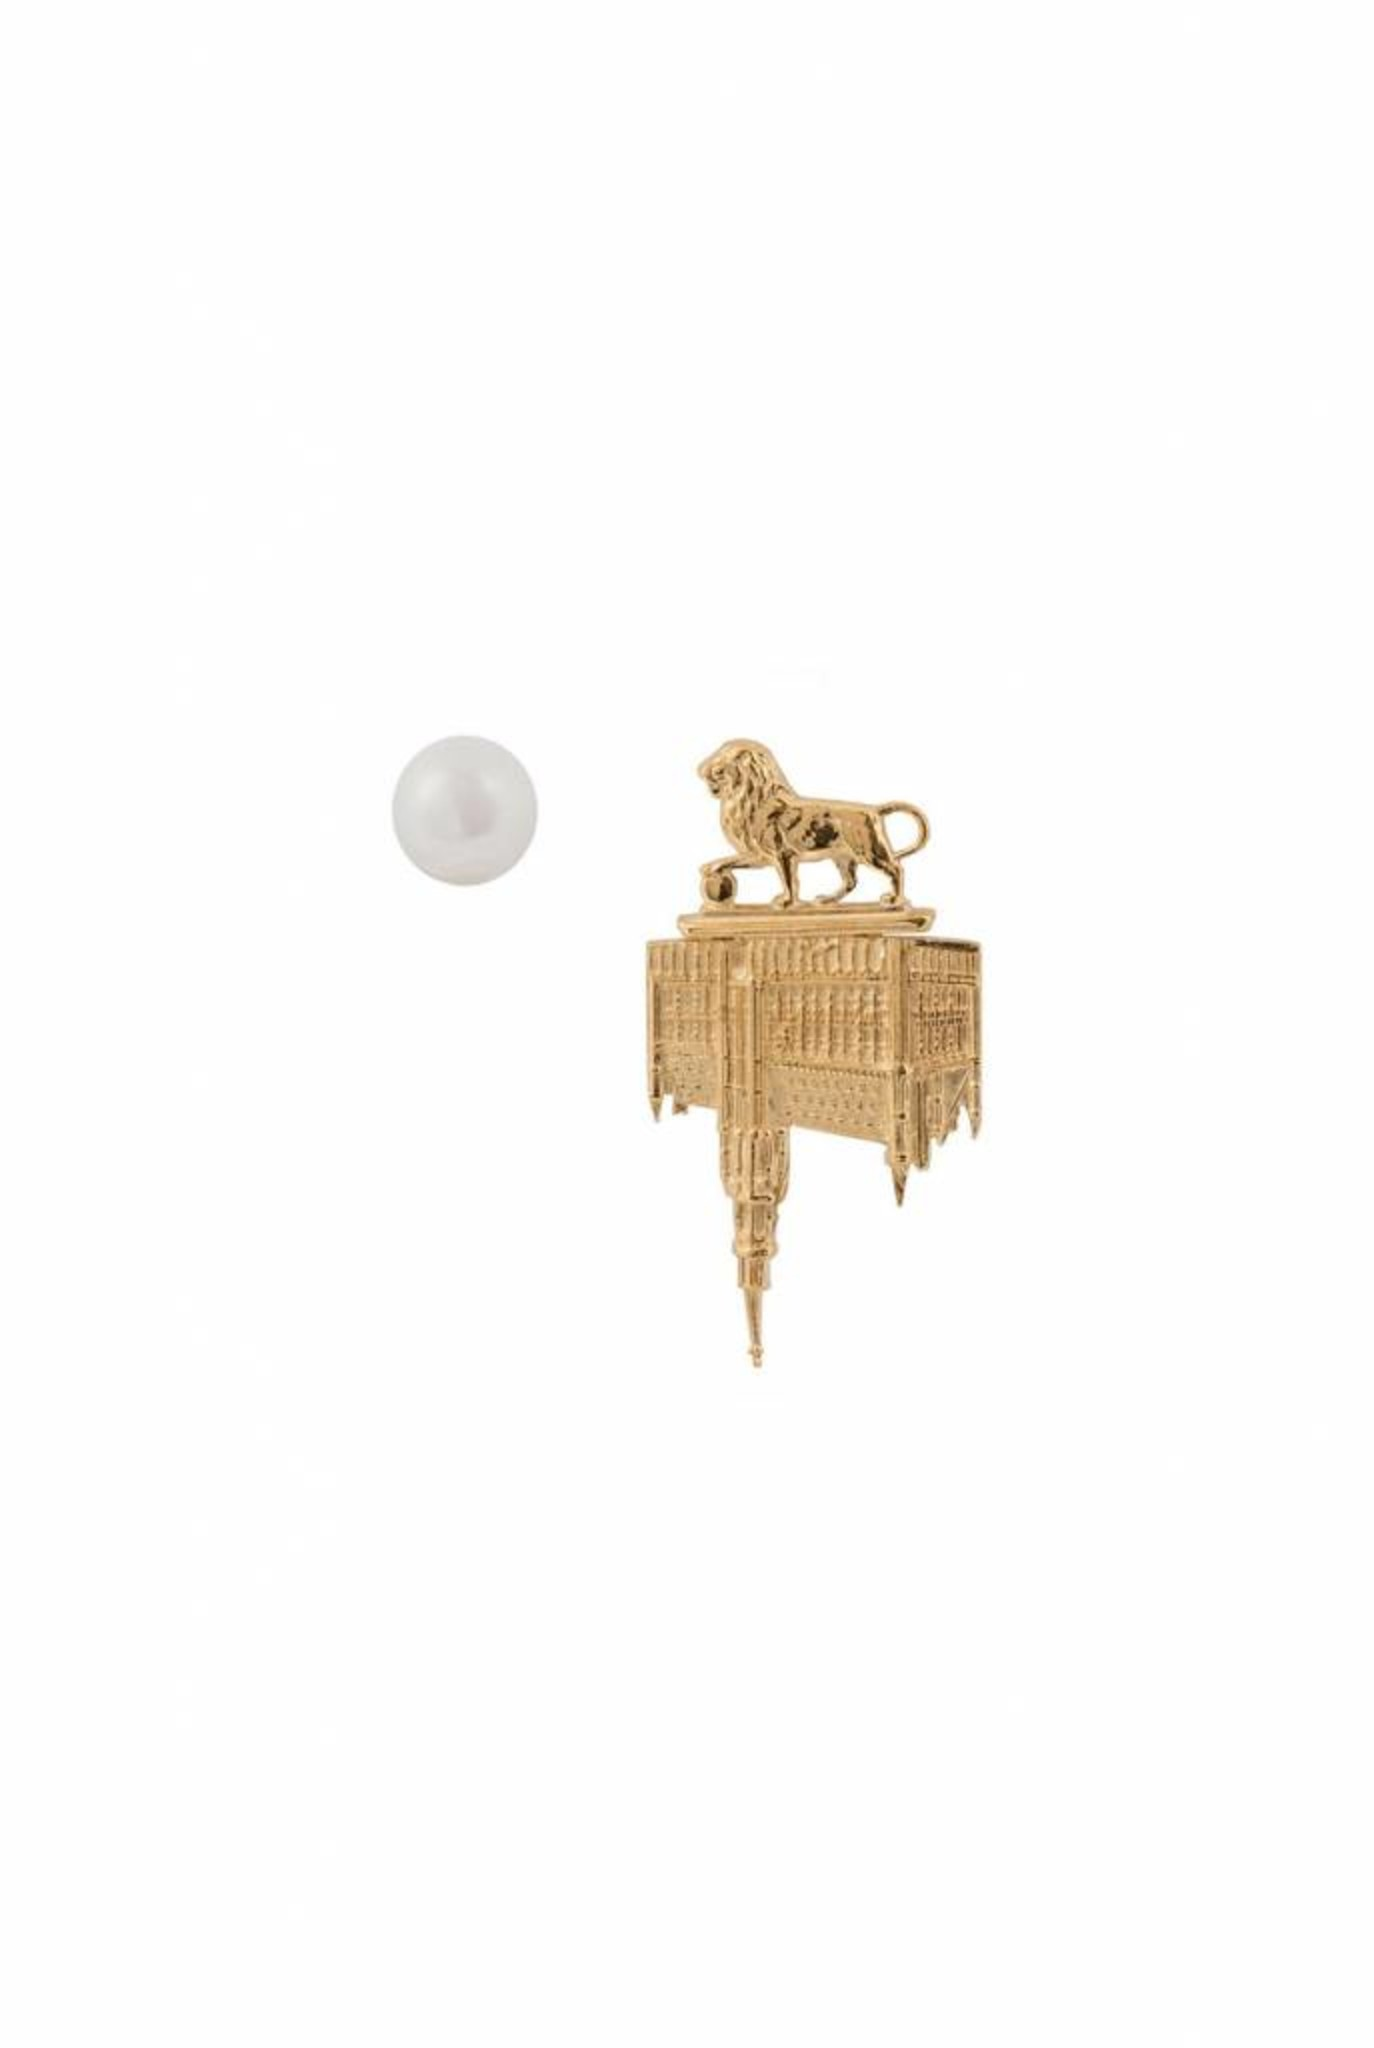 town hall lion and pearl earrings gold plated